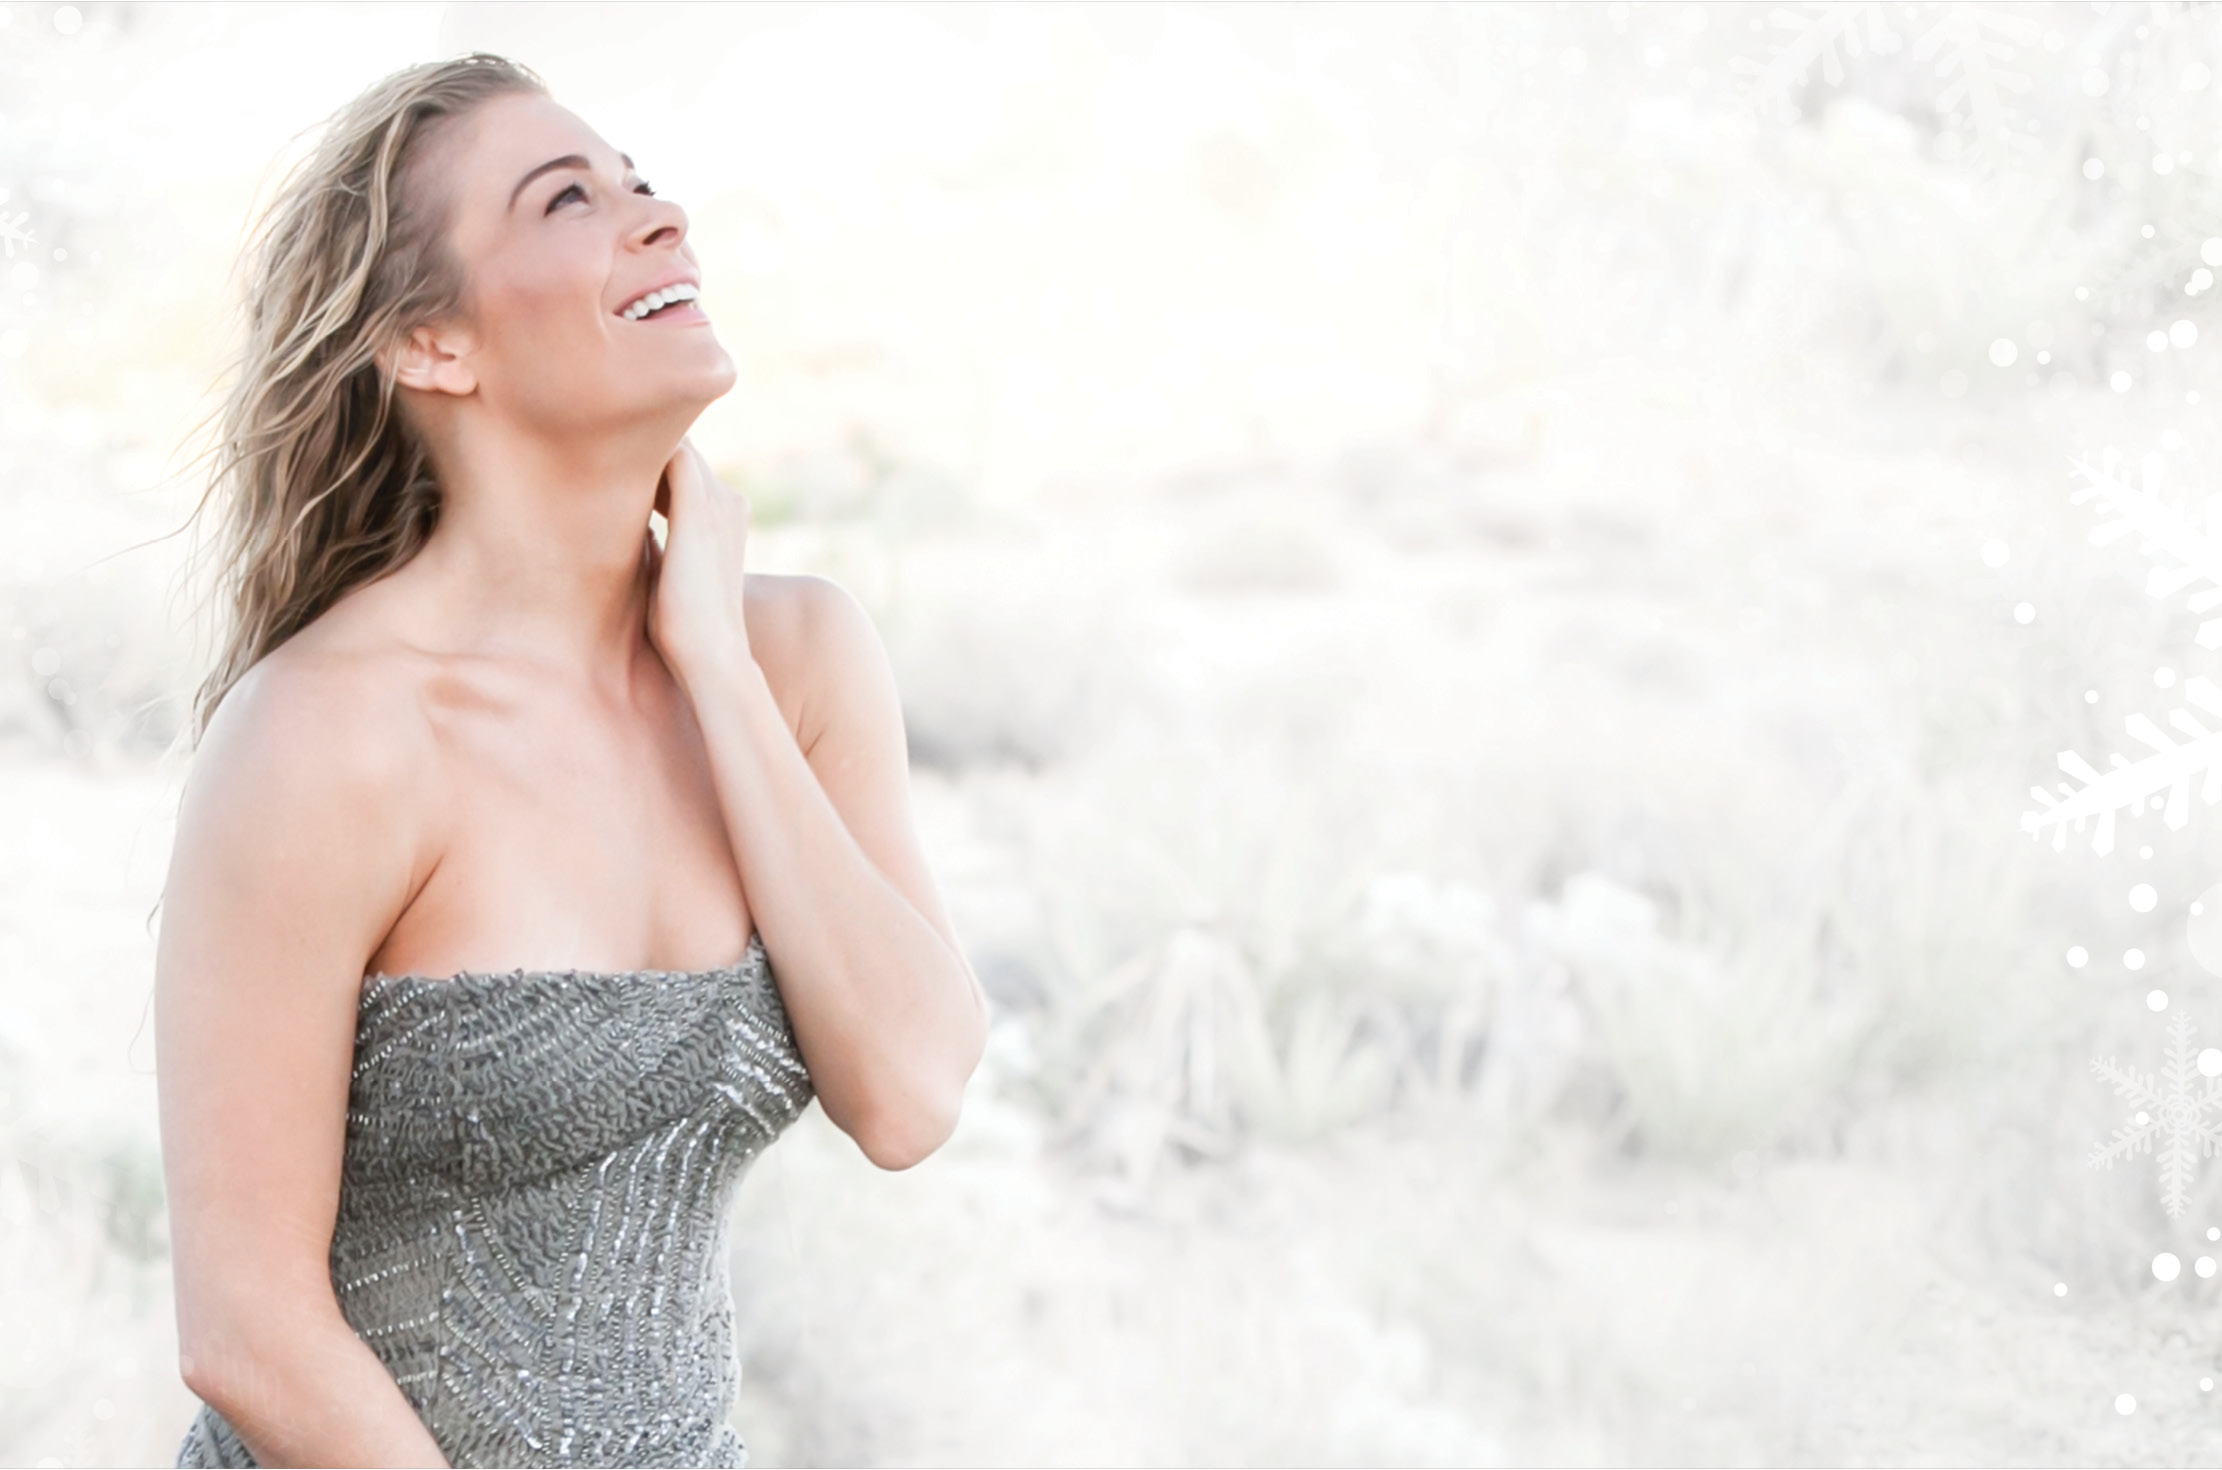 In the Holiday Spirit with LeAnn Rimes